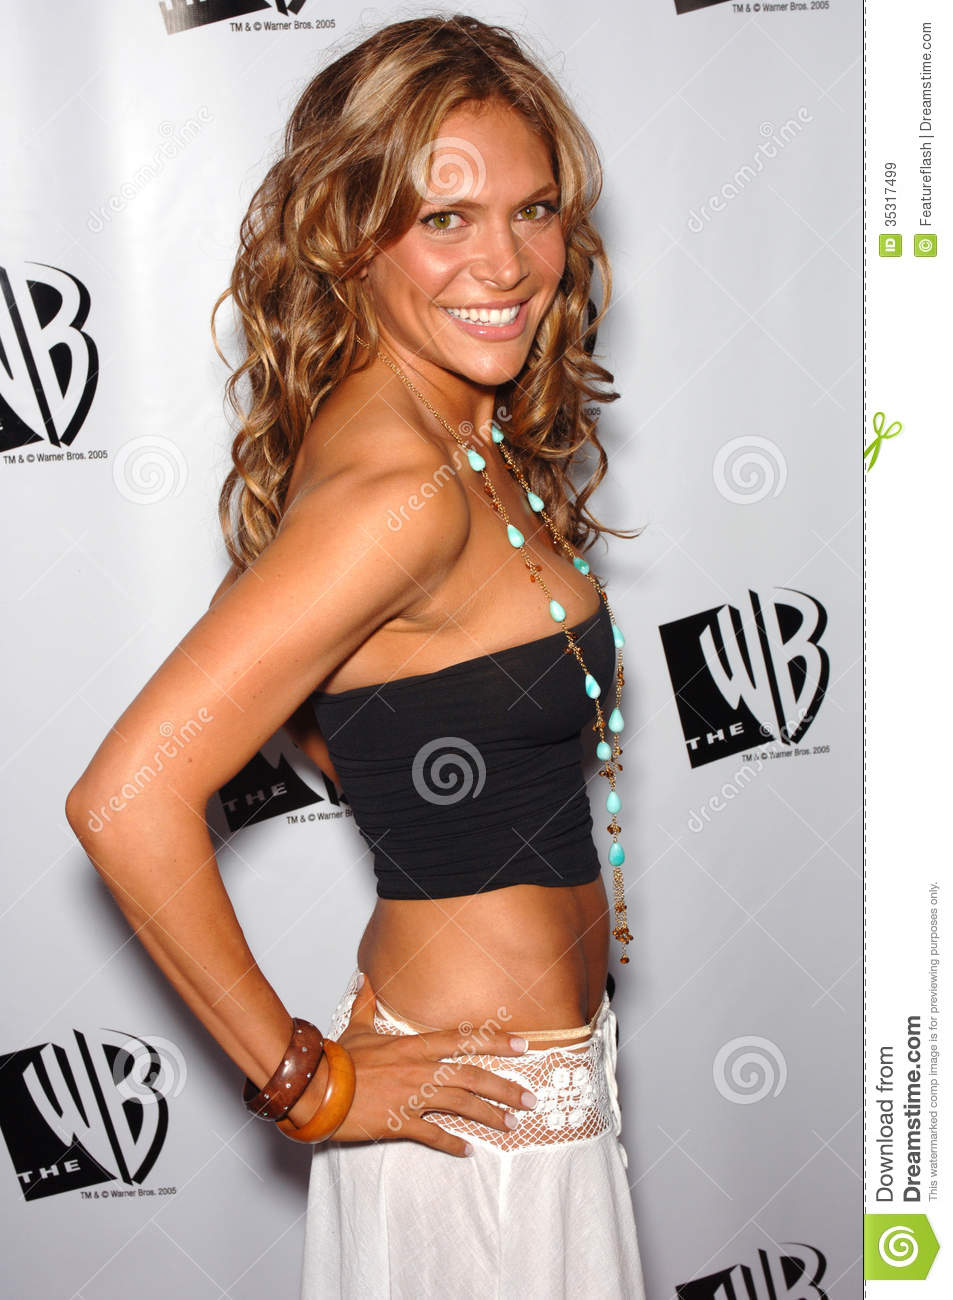 Story together with Stock Photography Lizzy Caplan Wb  work S All Star Celebration Cabana Club Hollywood Ca Image30011702 together with Light 8 likewise Stock Image Jennifer Esposito Actress Star Tv Show Related Wb Tv  work S All Star Celebration Hollywood July Los Angeles Ca Image35317491 together with Stock Image Allison Munn Actress Star Tv Series What I Like You Wb Tv  work S All Star Celebration Hollywood July Los Image35528361. on star network architecture